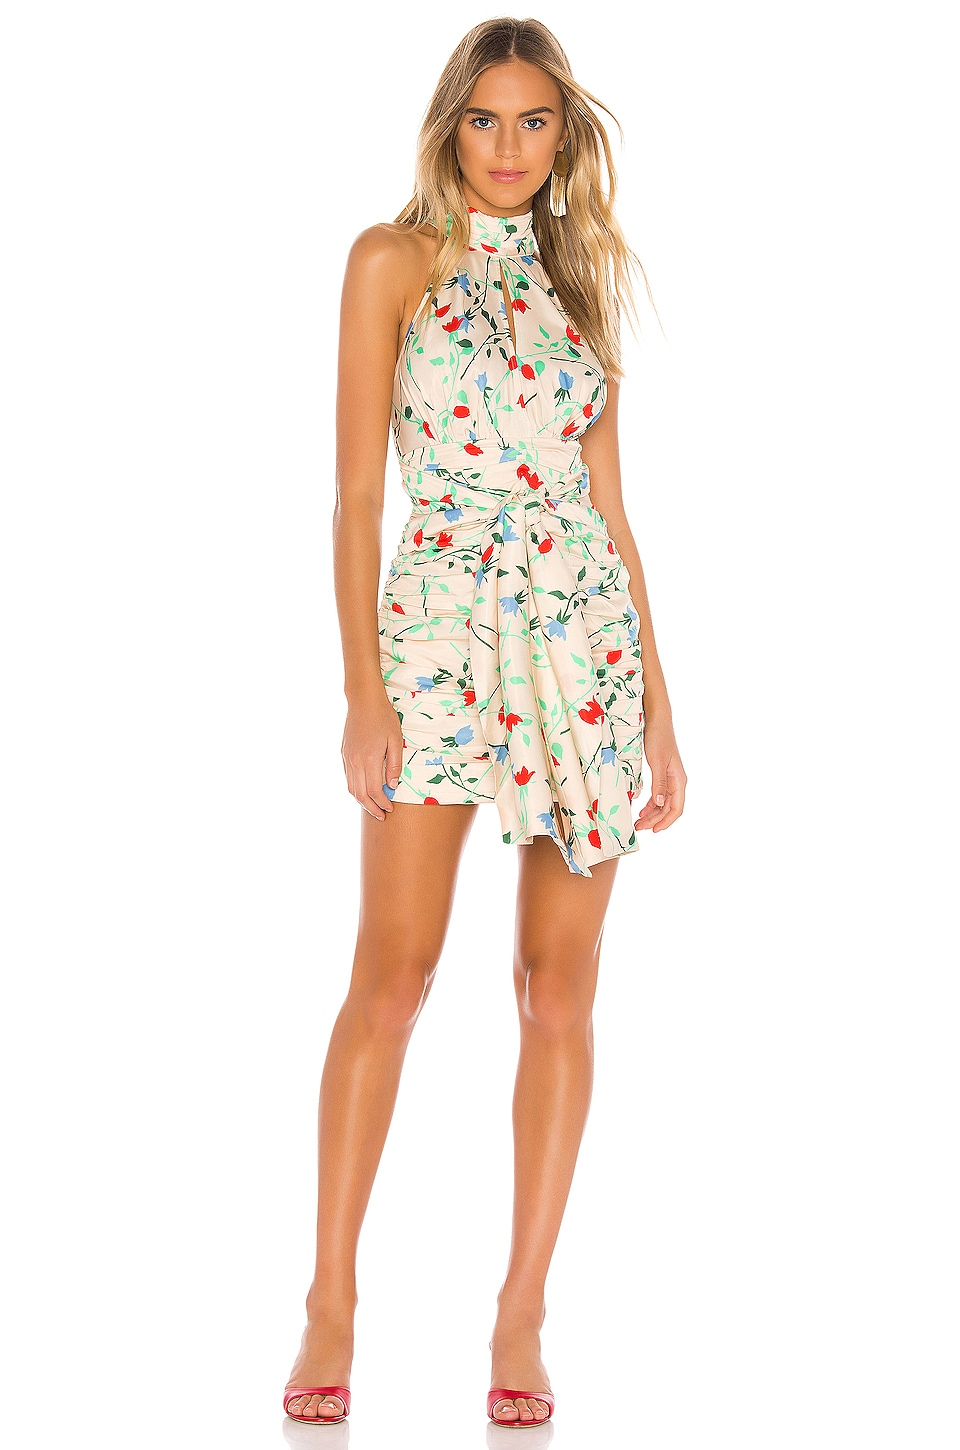 C/MEO Sectional Short Sleeve Dress in Apricot Floral